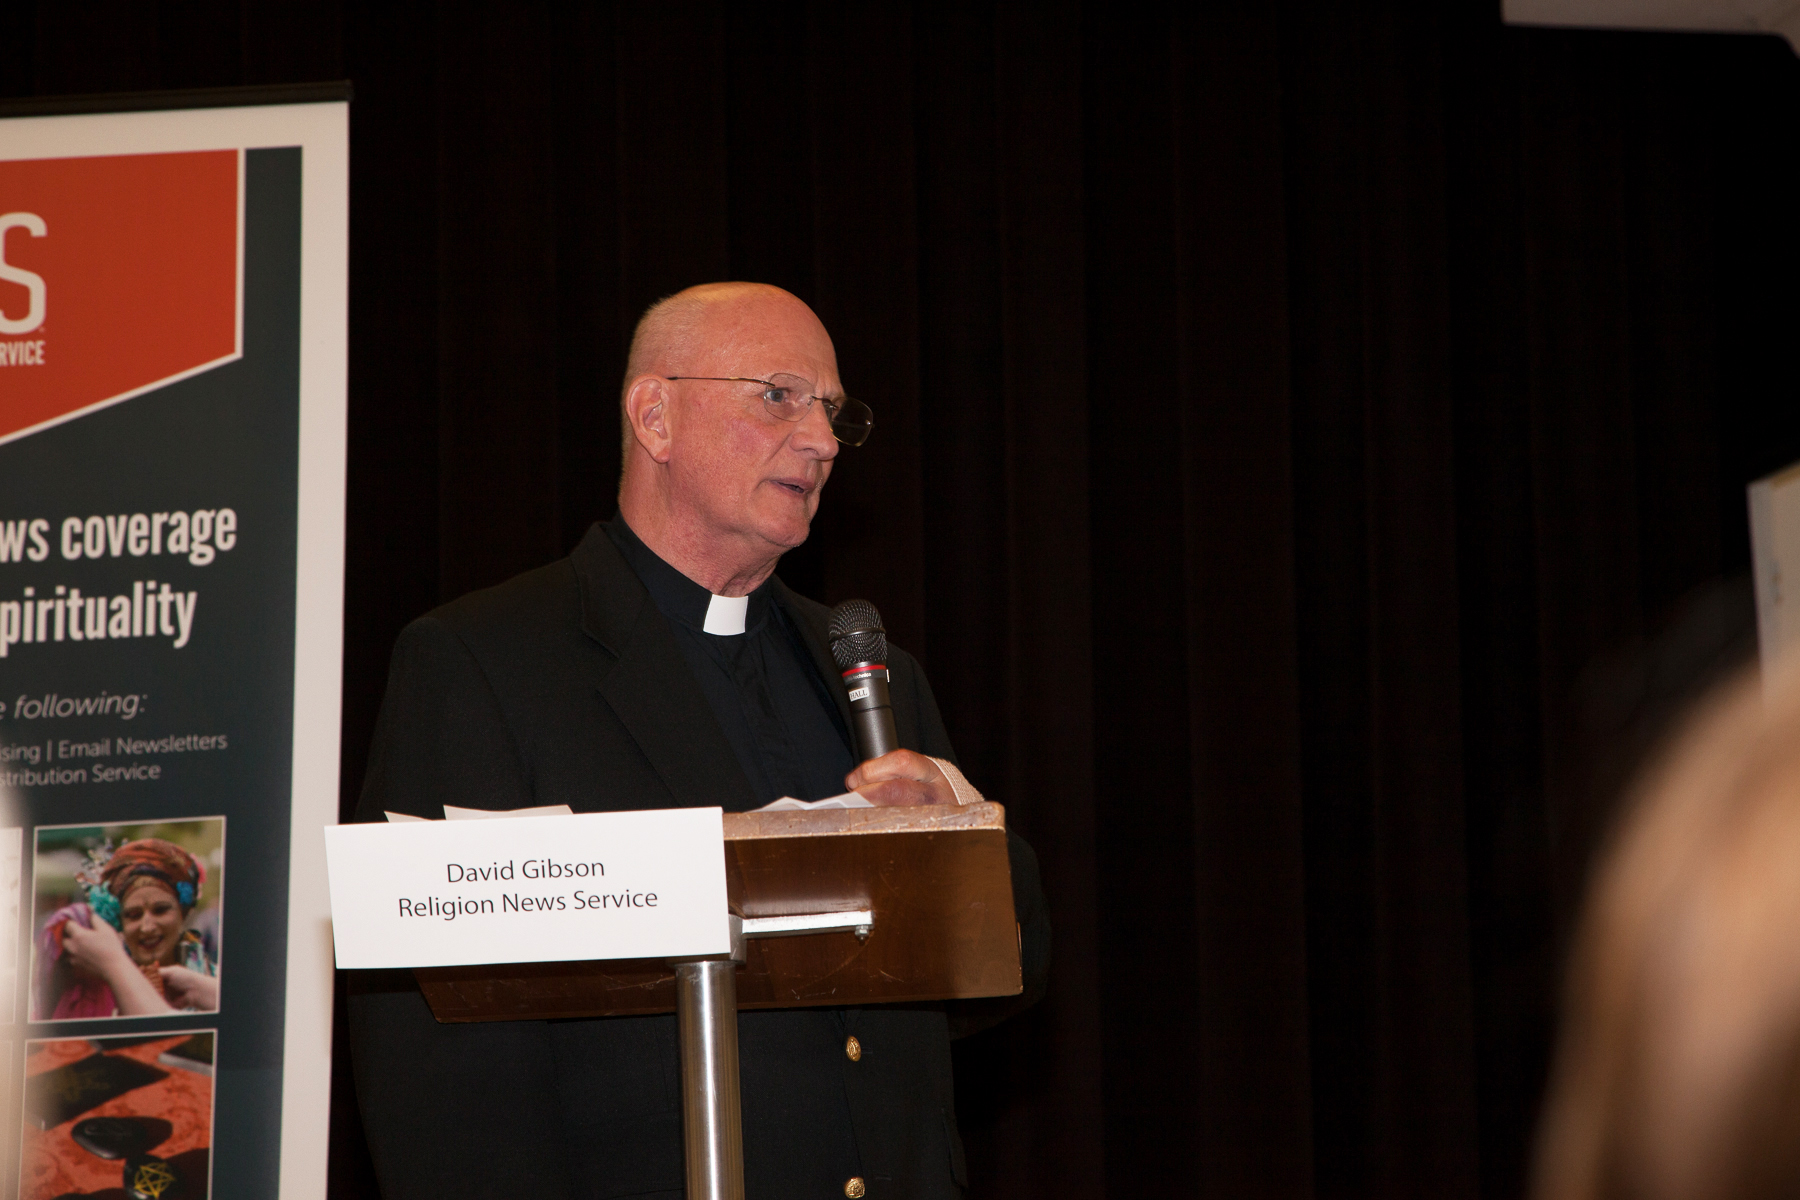 """Monsignor Alan F. Detscher, STD, pastor of St. Catherine of Siena Parish, Riverside, Conn., who co-sponsored with Religion News Service the expert panel discussion, """"Election Aftermath: Faith & the Common Good,"""" held at the parish on Dec. 7, 2016, offers some concluding remarks."""